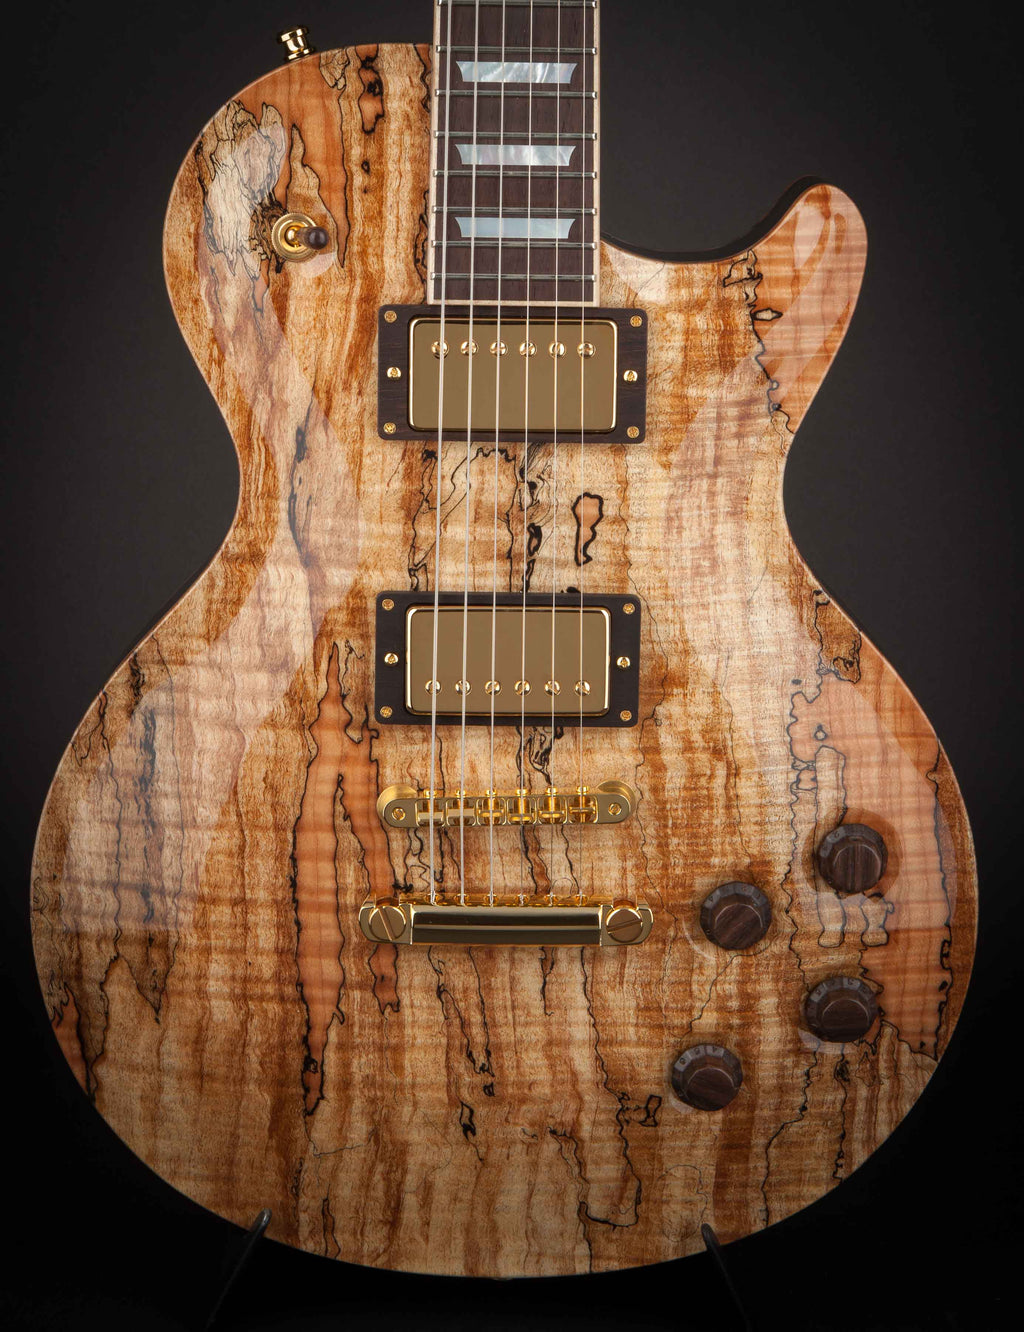 Nik Huber Orca 59 Spalted Maple with Brazilian Fingerboard #72495